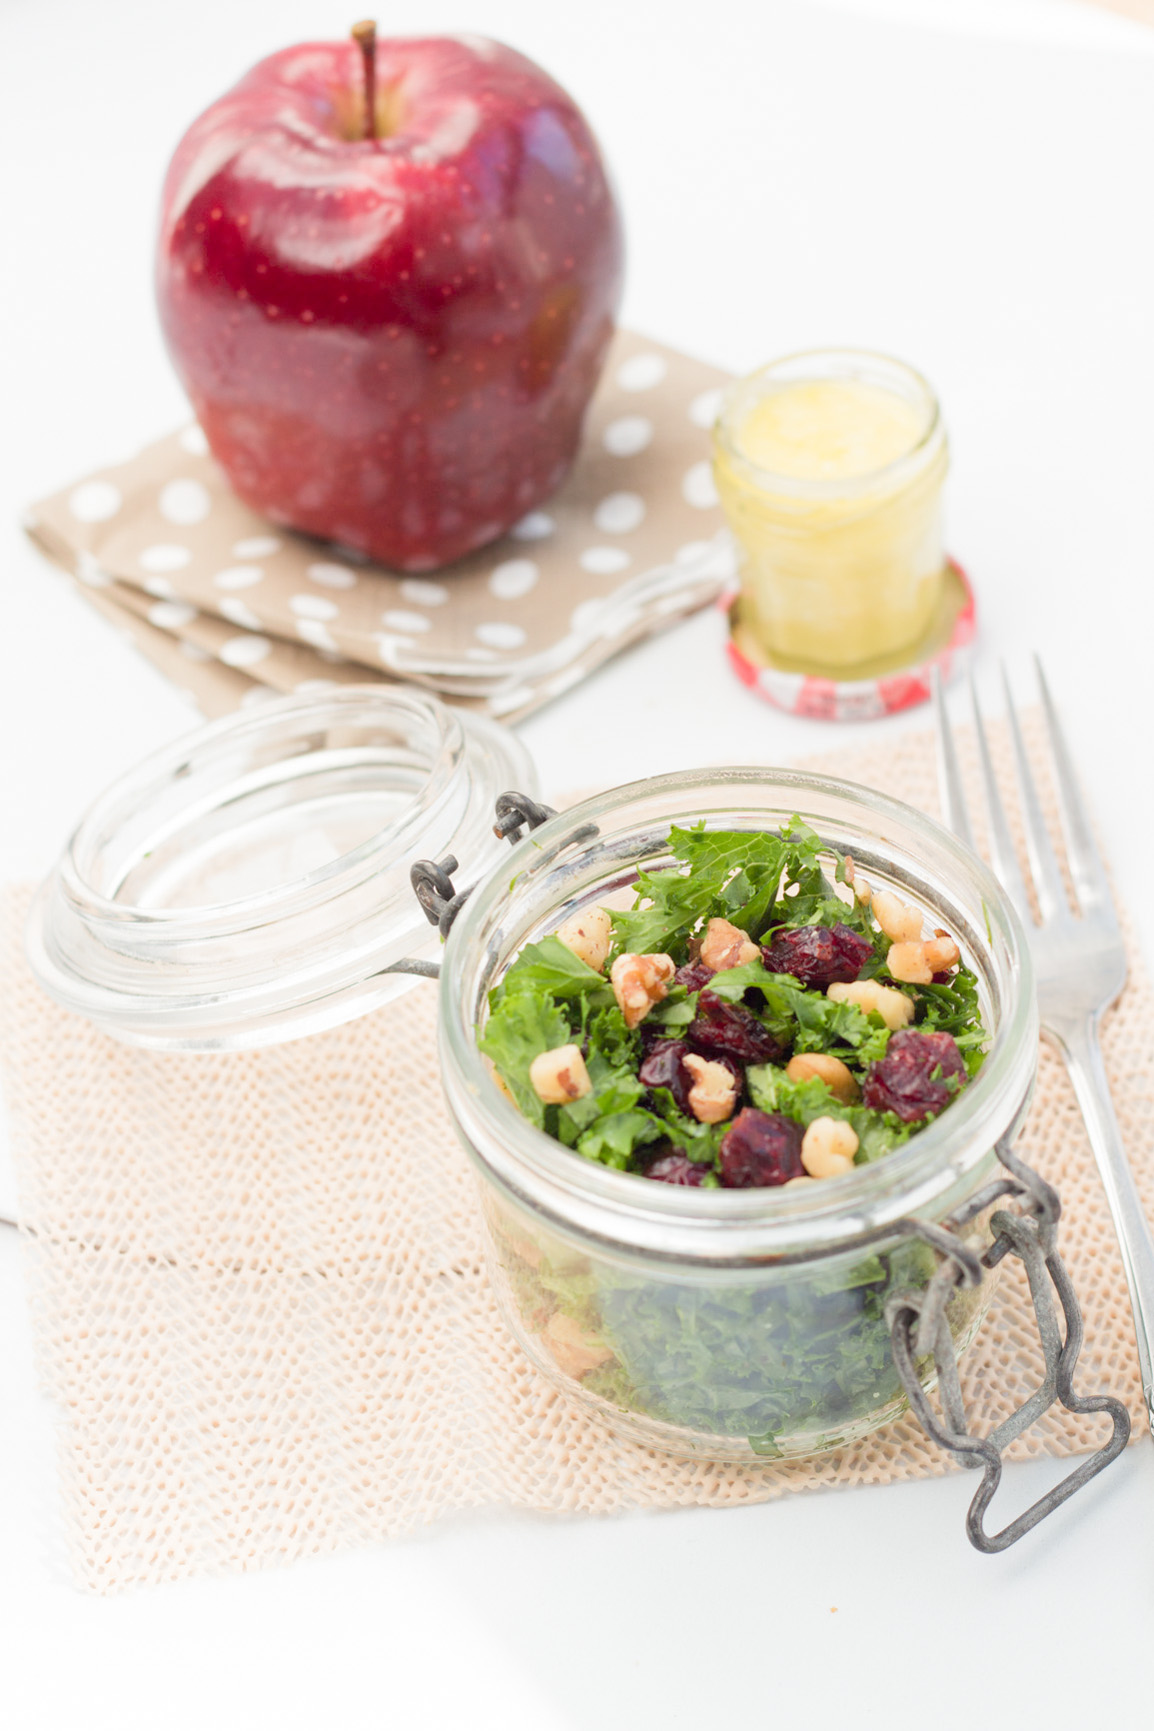 Cranberry Walnut kale salad with goat cheese dressing